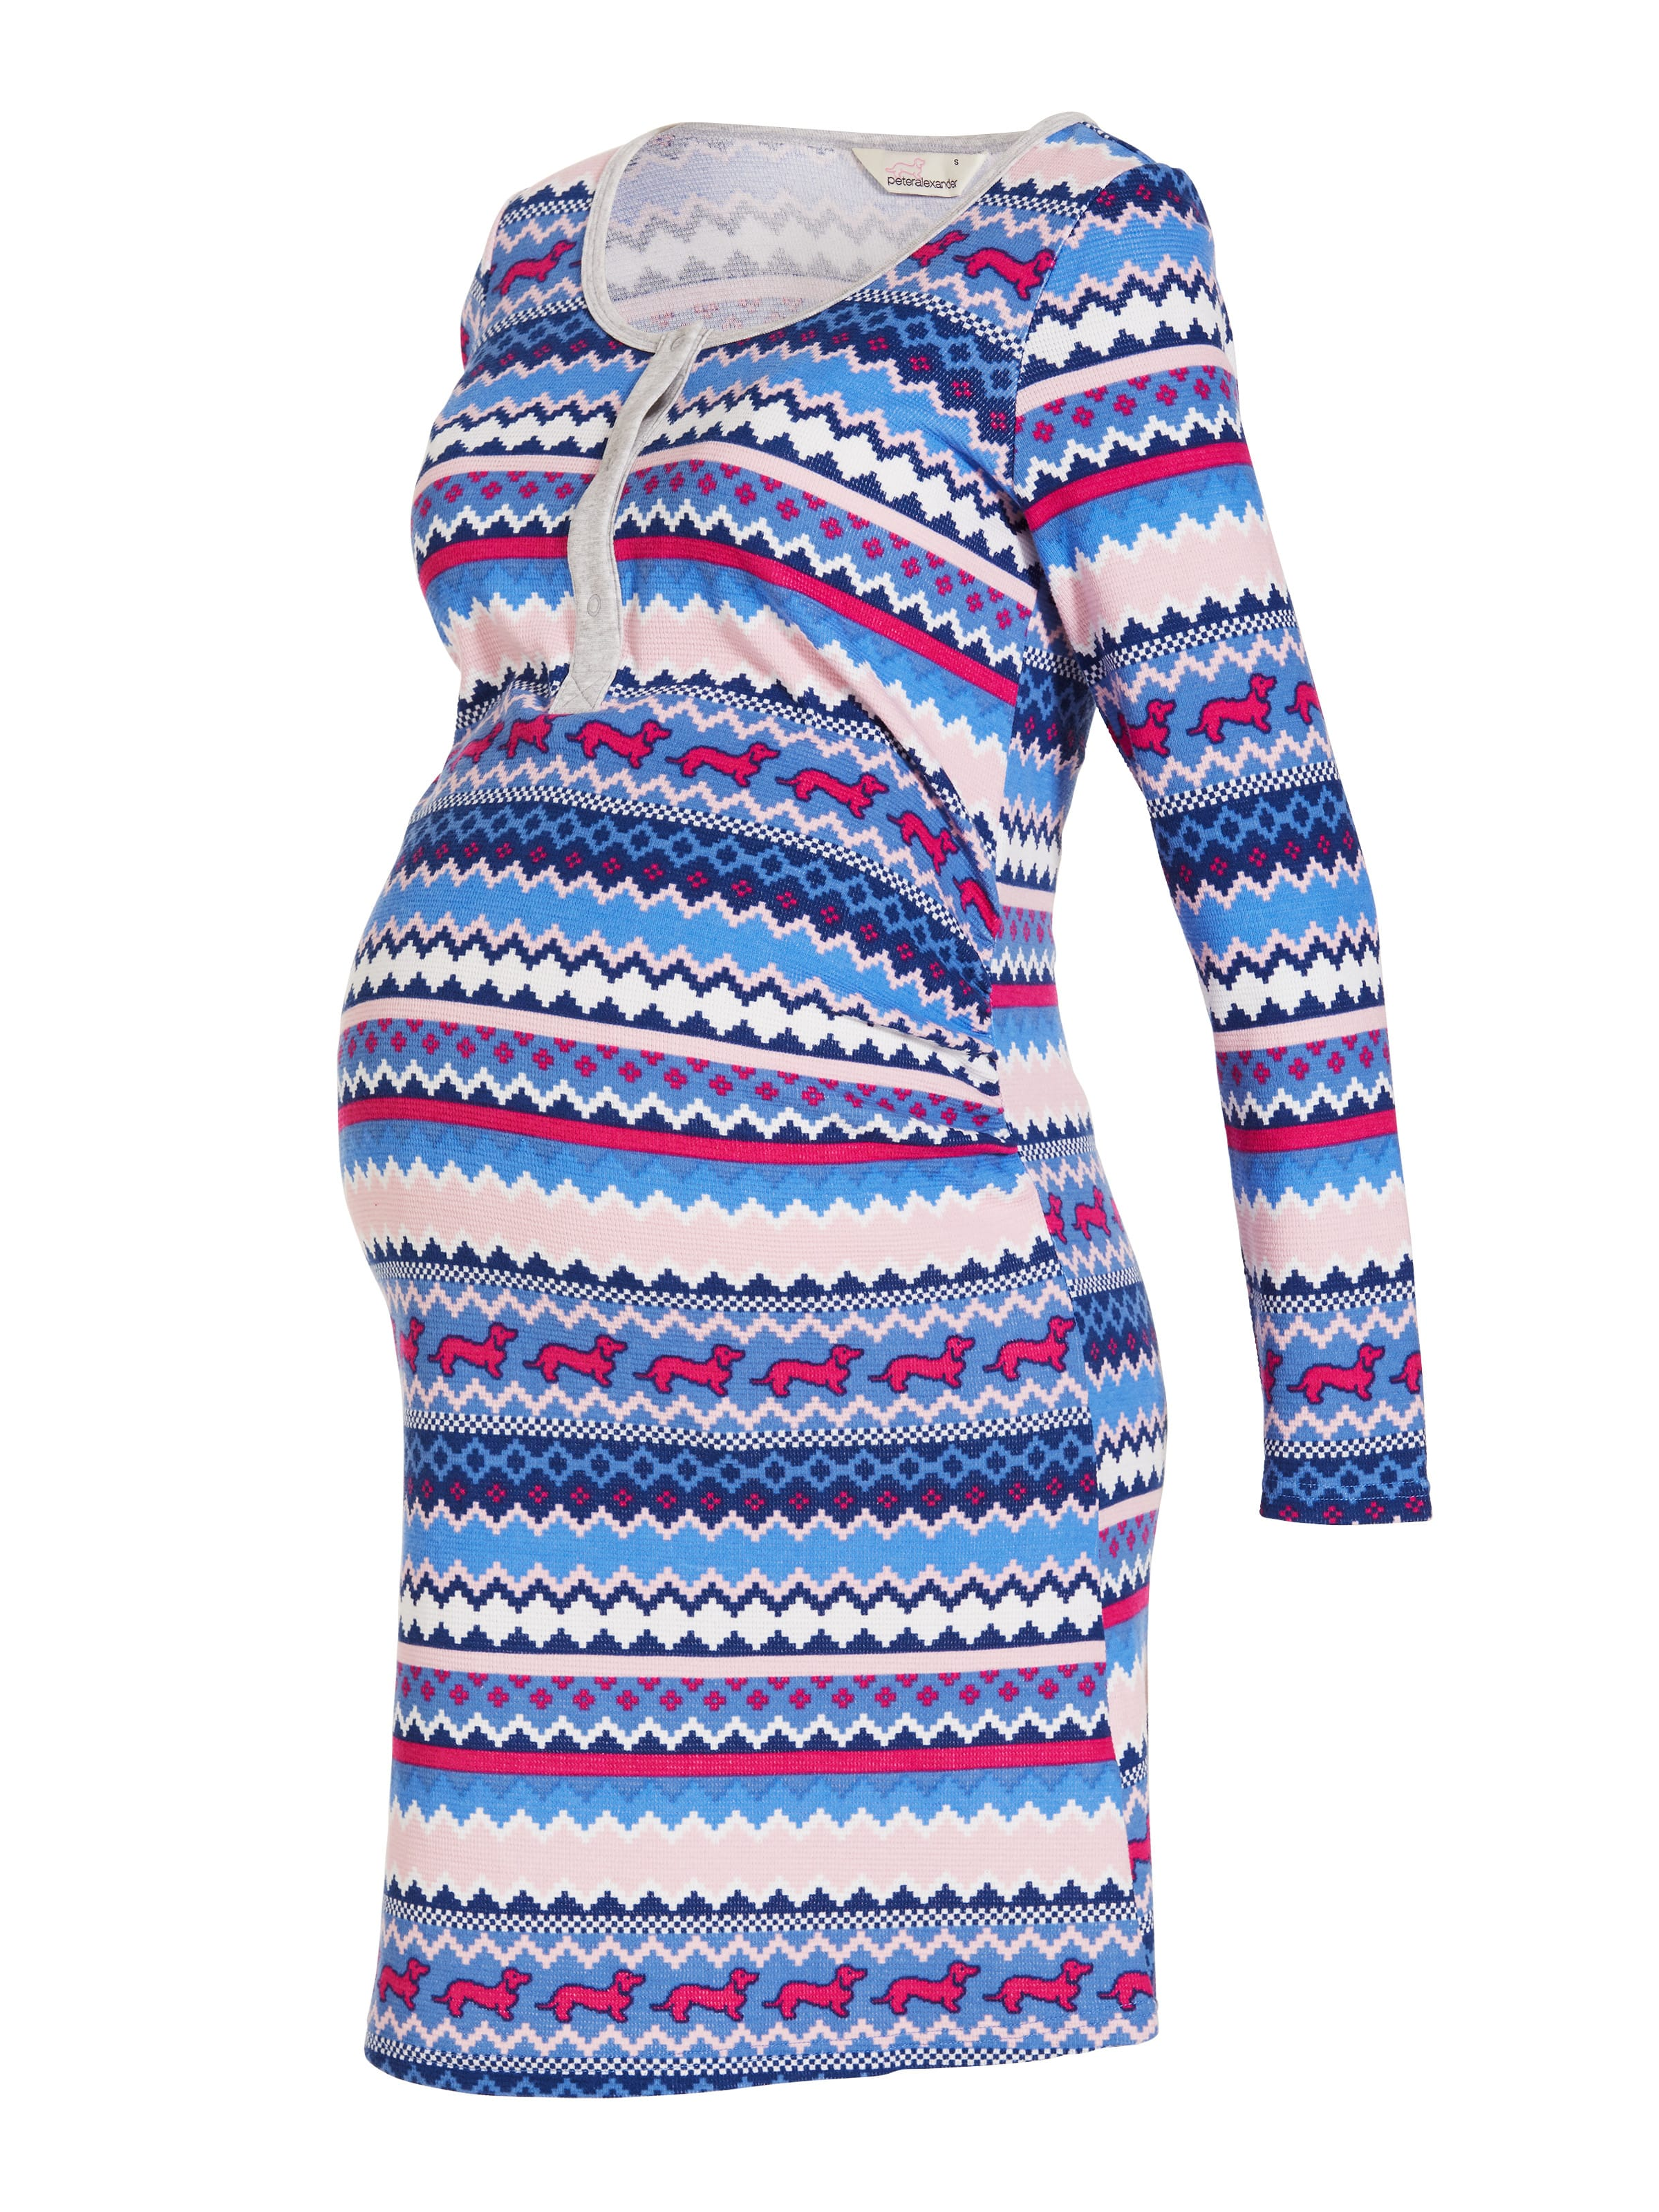 Maternity Fairisle Nightie